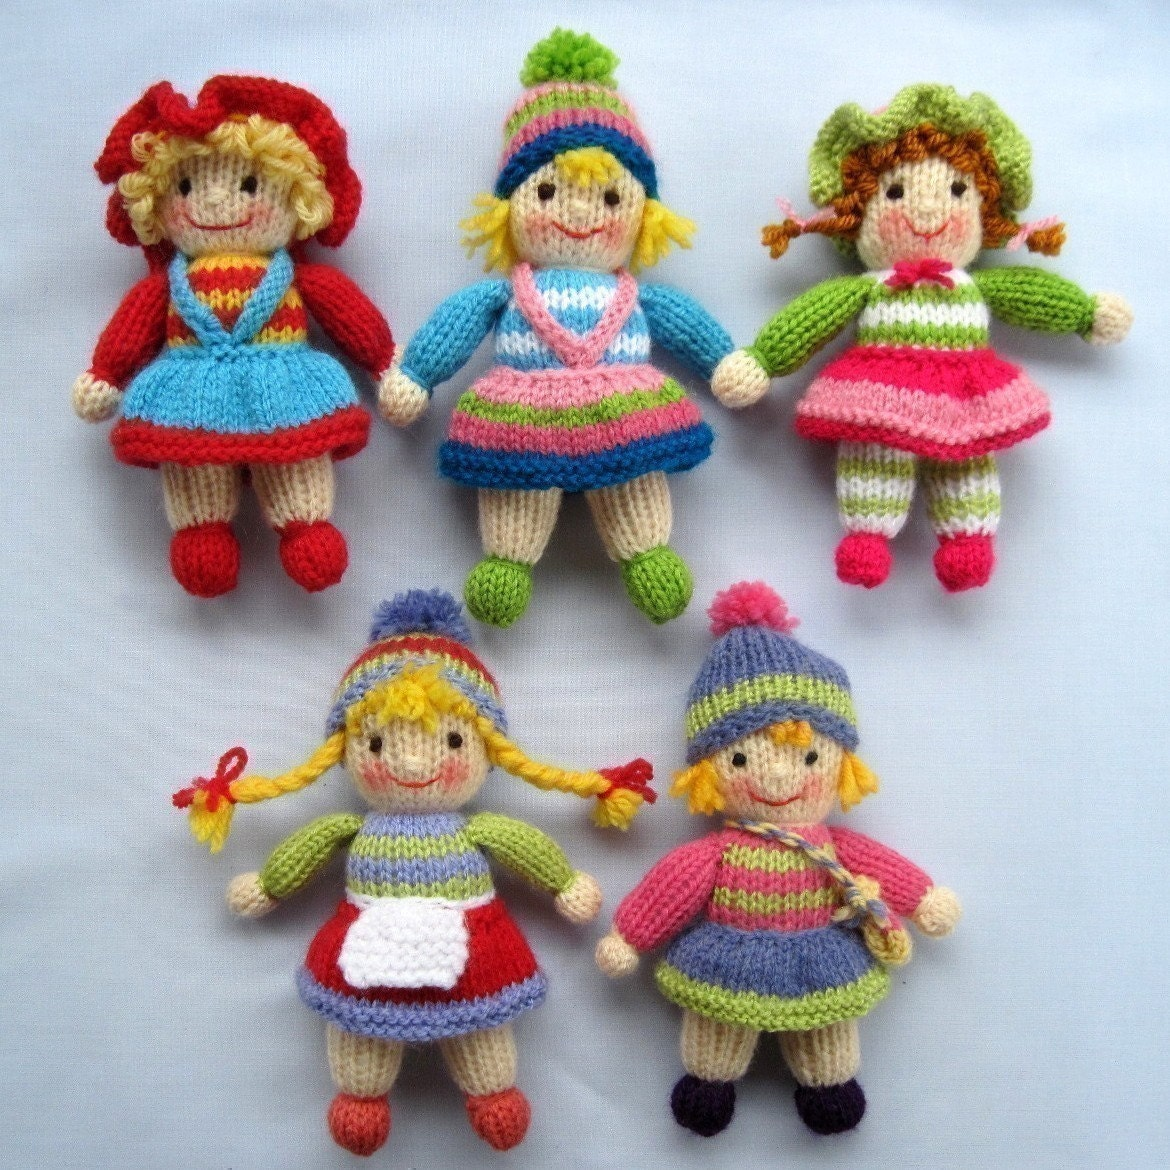 Knitting Patterns For Toys On Etsy : JOLLY TOTS toy dolls PDF email knitting pattern